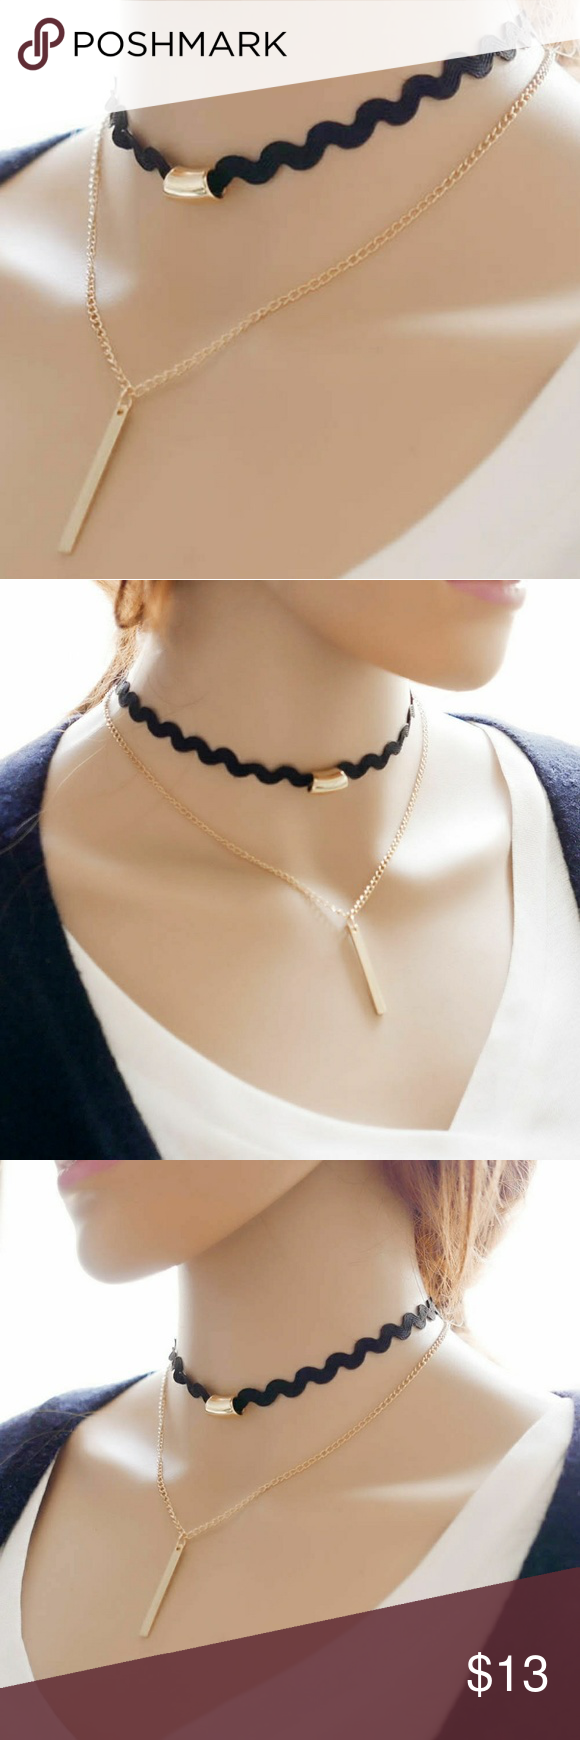 New 2pc Gold and Black Necklace Choker New Jewelry Necklaces